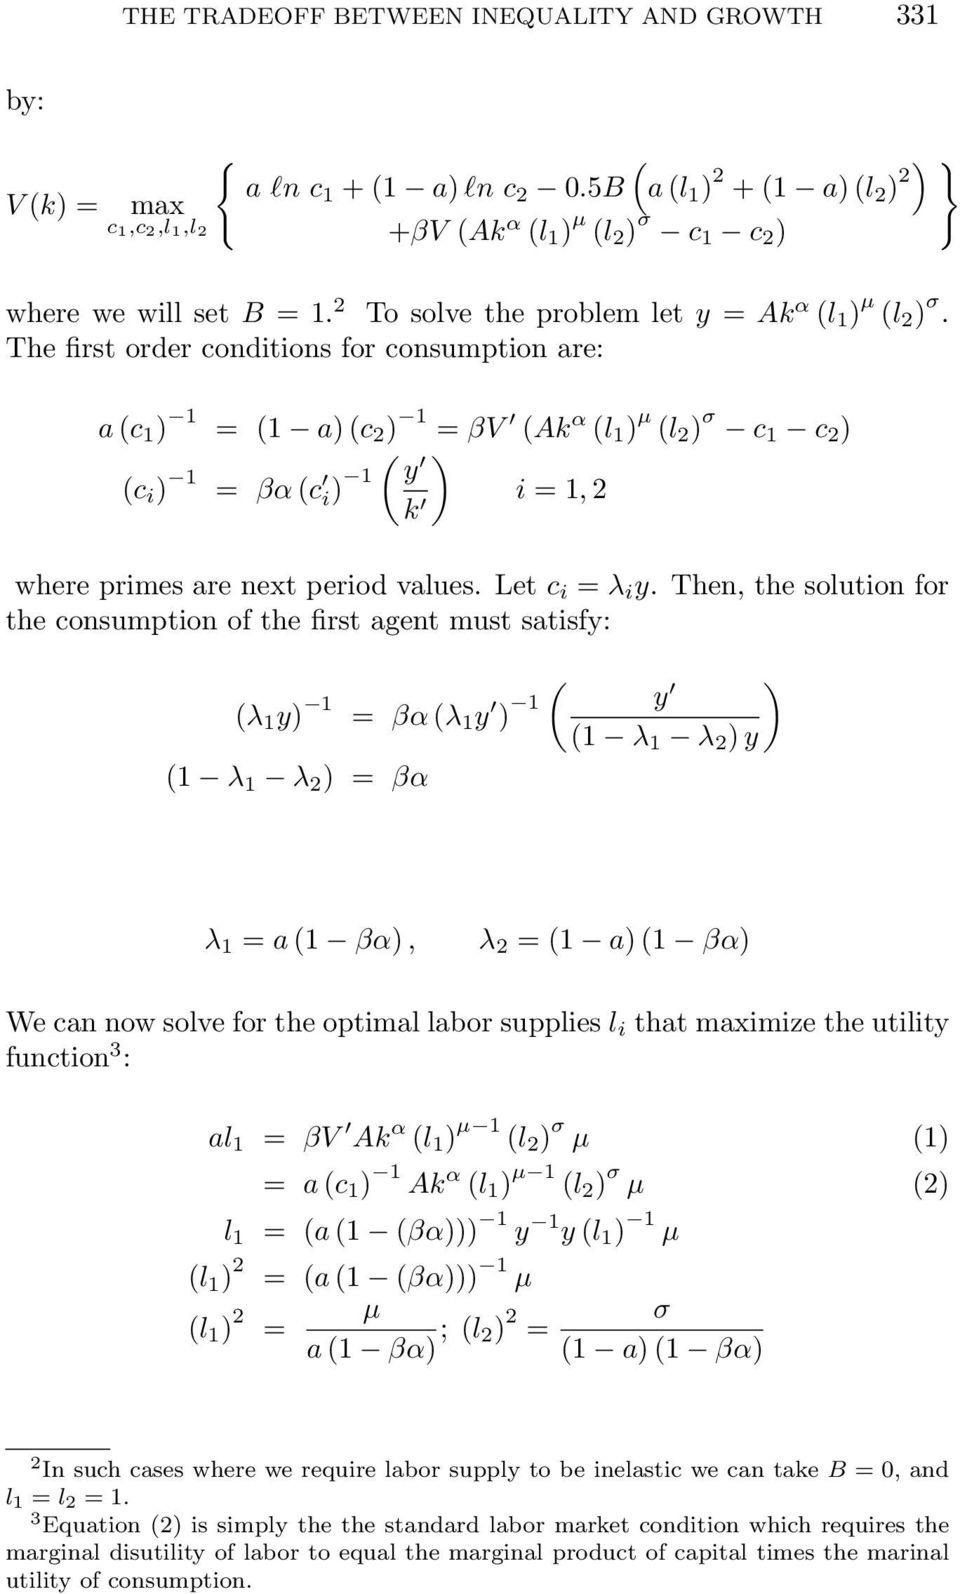 The first order conditions for consumption re: } c 1 1 = 1 c 2 1 = βv Ak α l 1 l 2 σ c 1 c 2 c i 1 = βα c i 1 y i = 1, 2 k where primes re next period vlues. Let c i = λ i y.